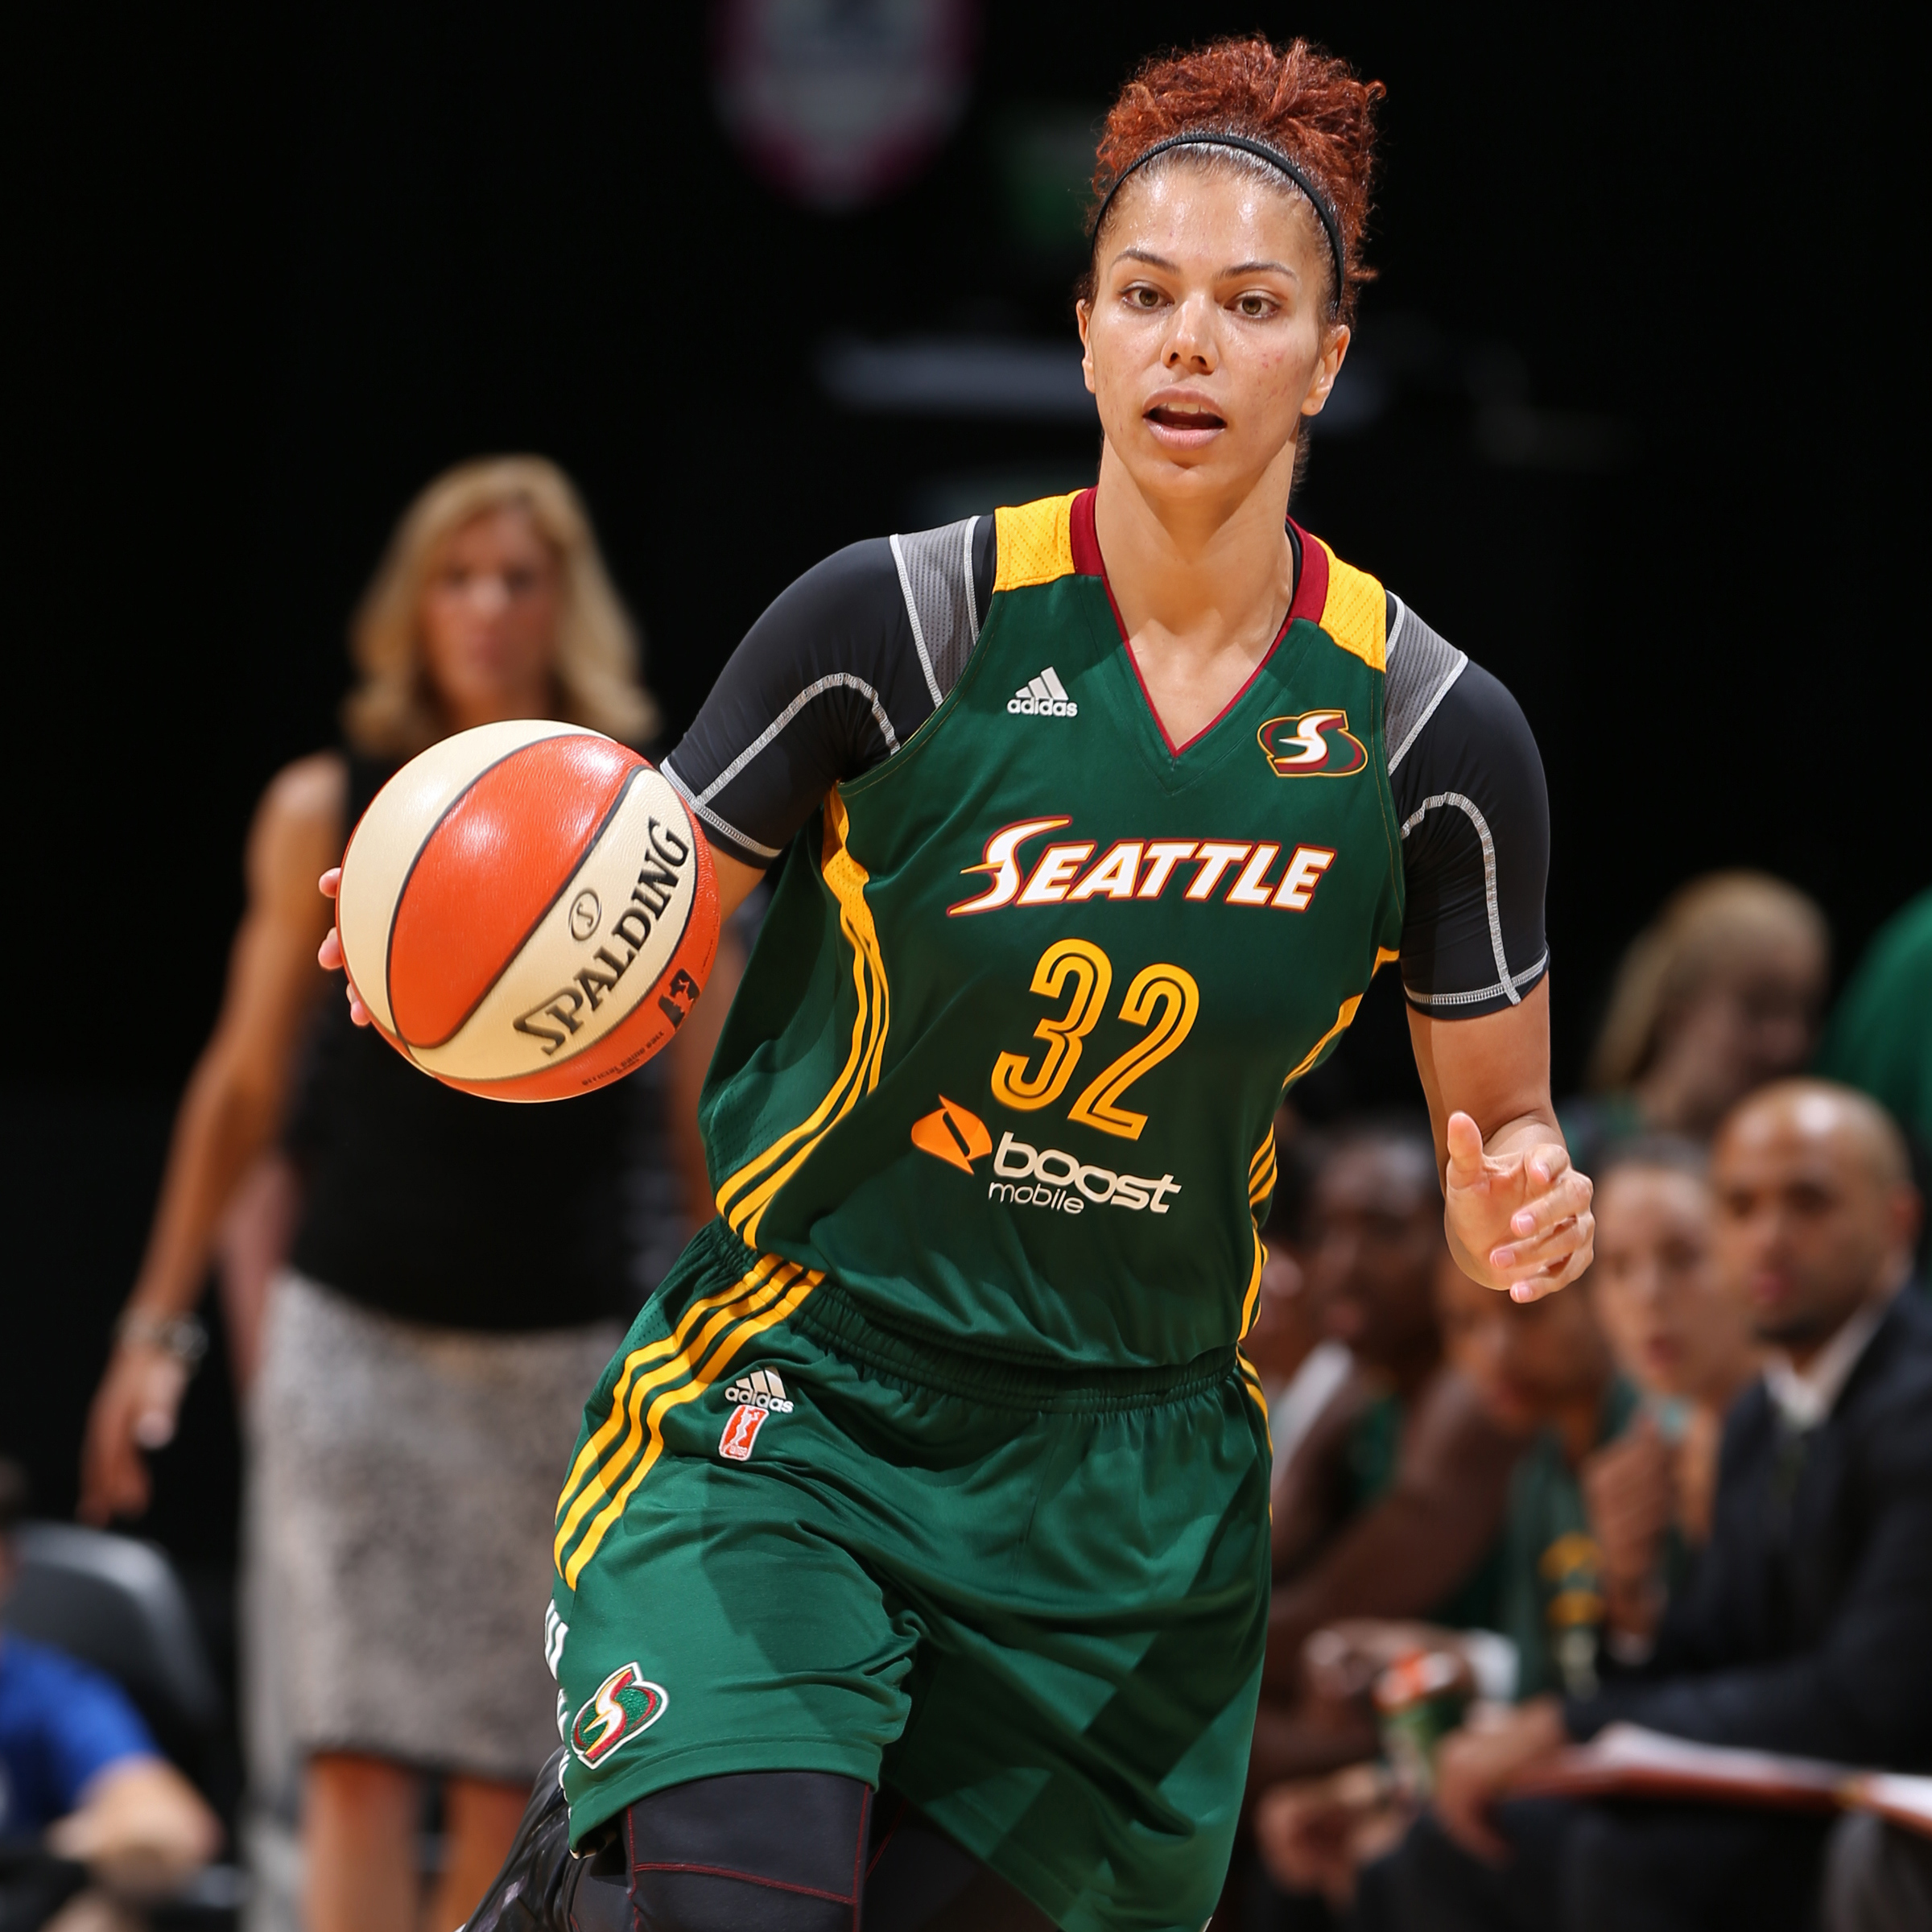 Forward Alysha Clark delivered a solid performance for the Storm on Tuesday night, finishing with 12 points, six rebounds and three steals in the loss.